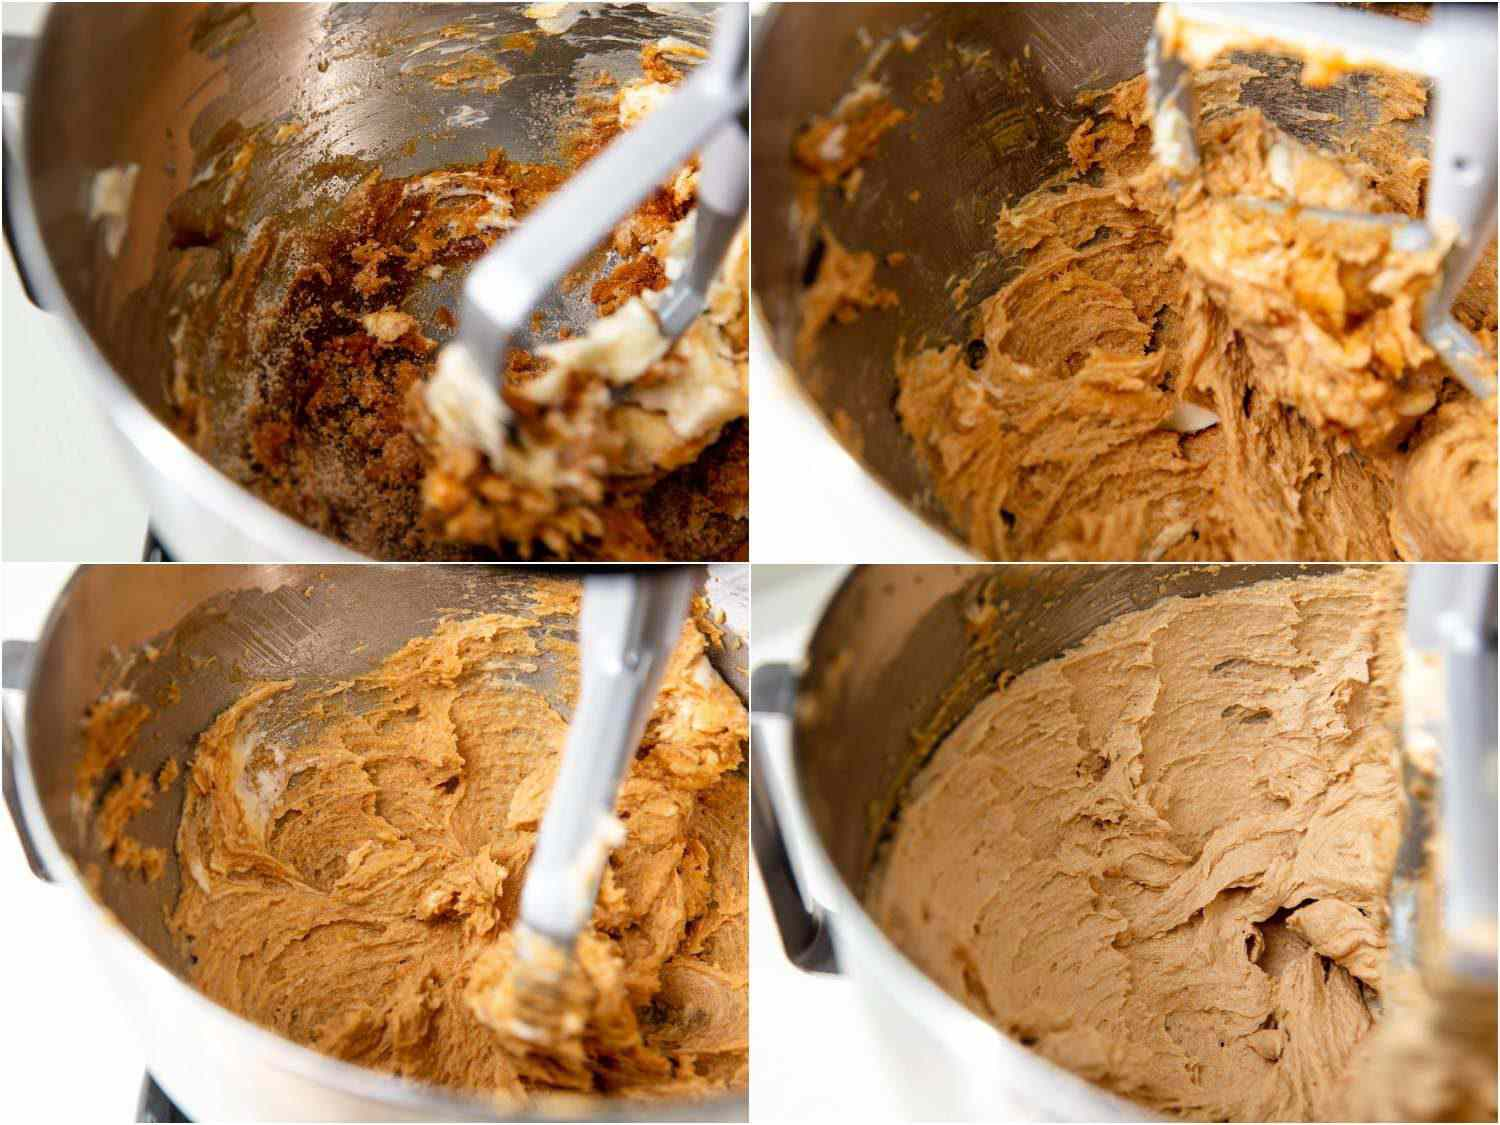 Four stages of the creaming process, from gritty, dense, and dark to smooth, light, and pale.